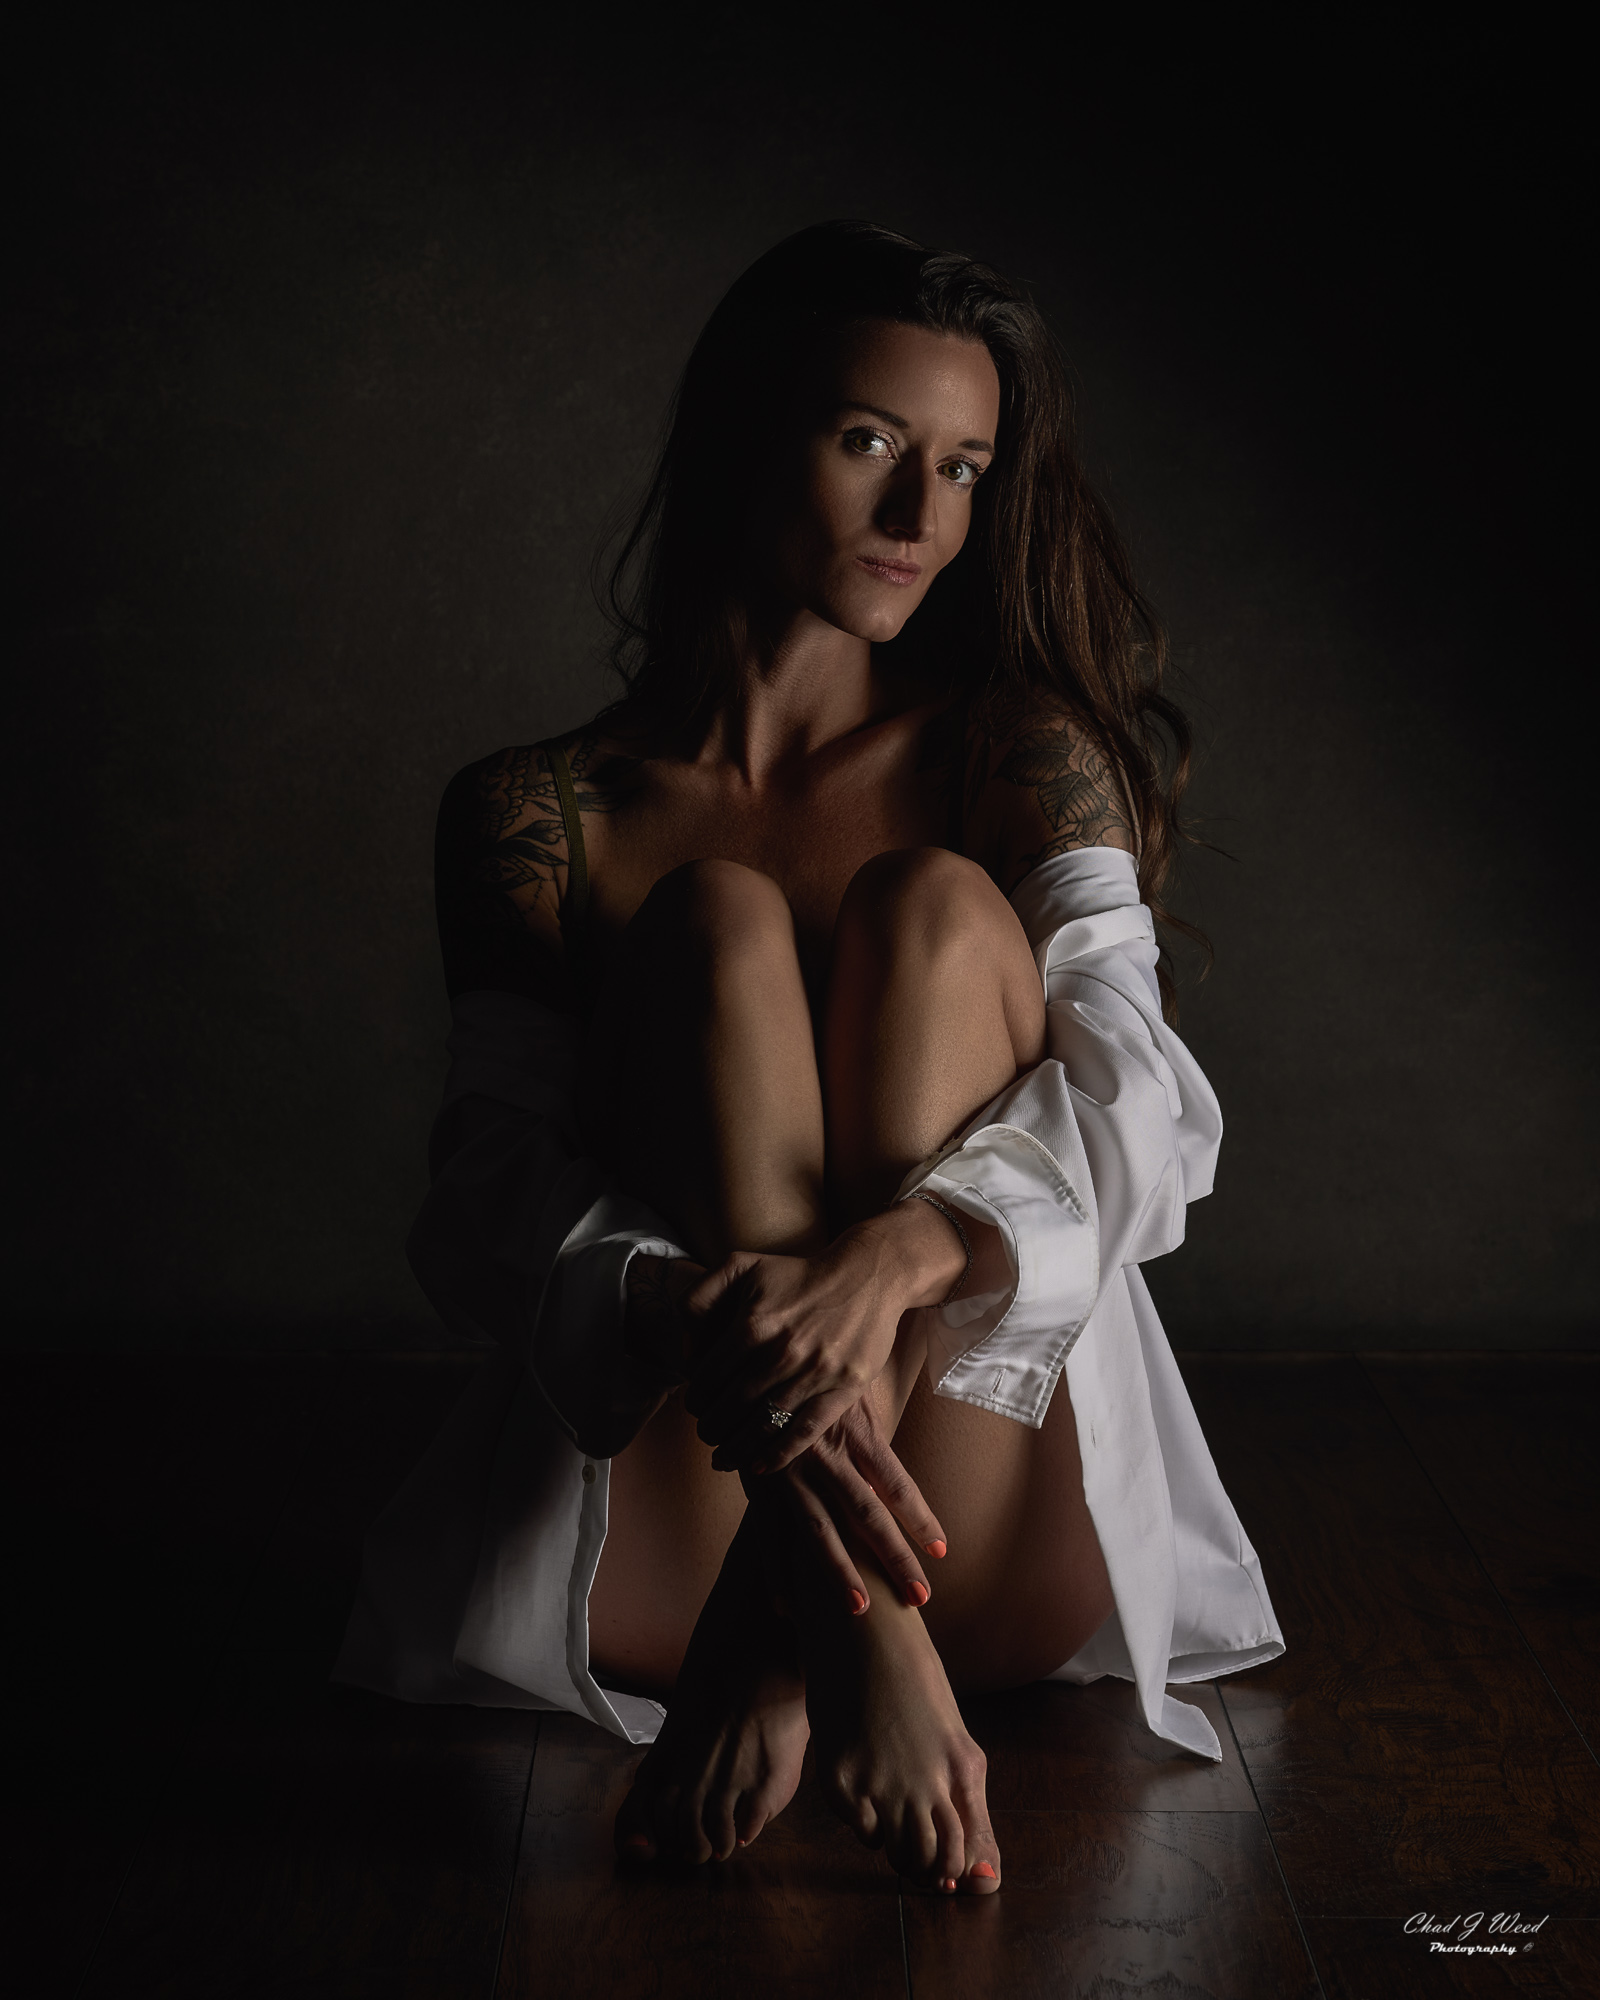 Kristi Boudoir Session with Chad J Weed Photography in Mesa, Arizona